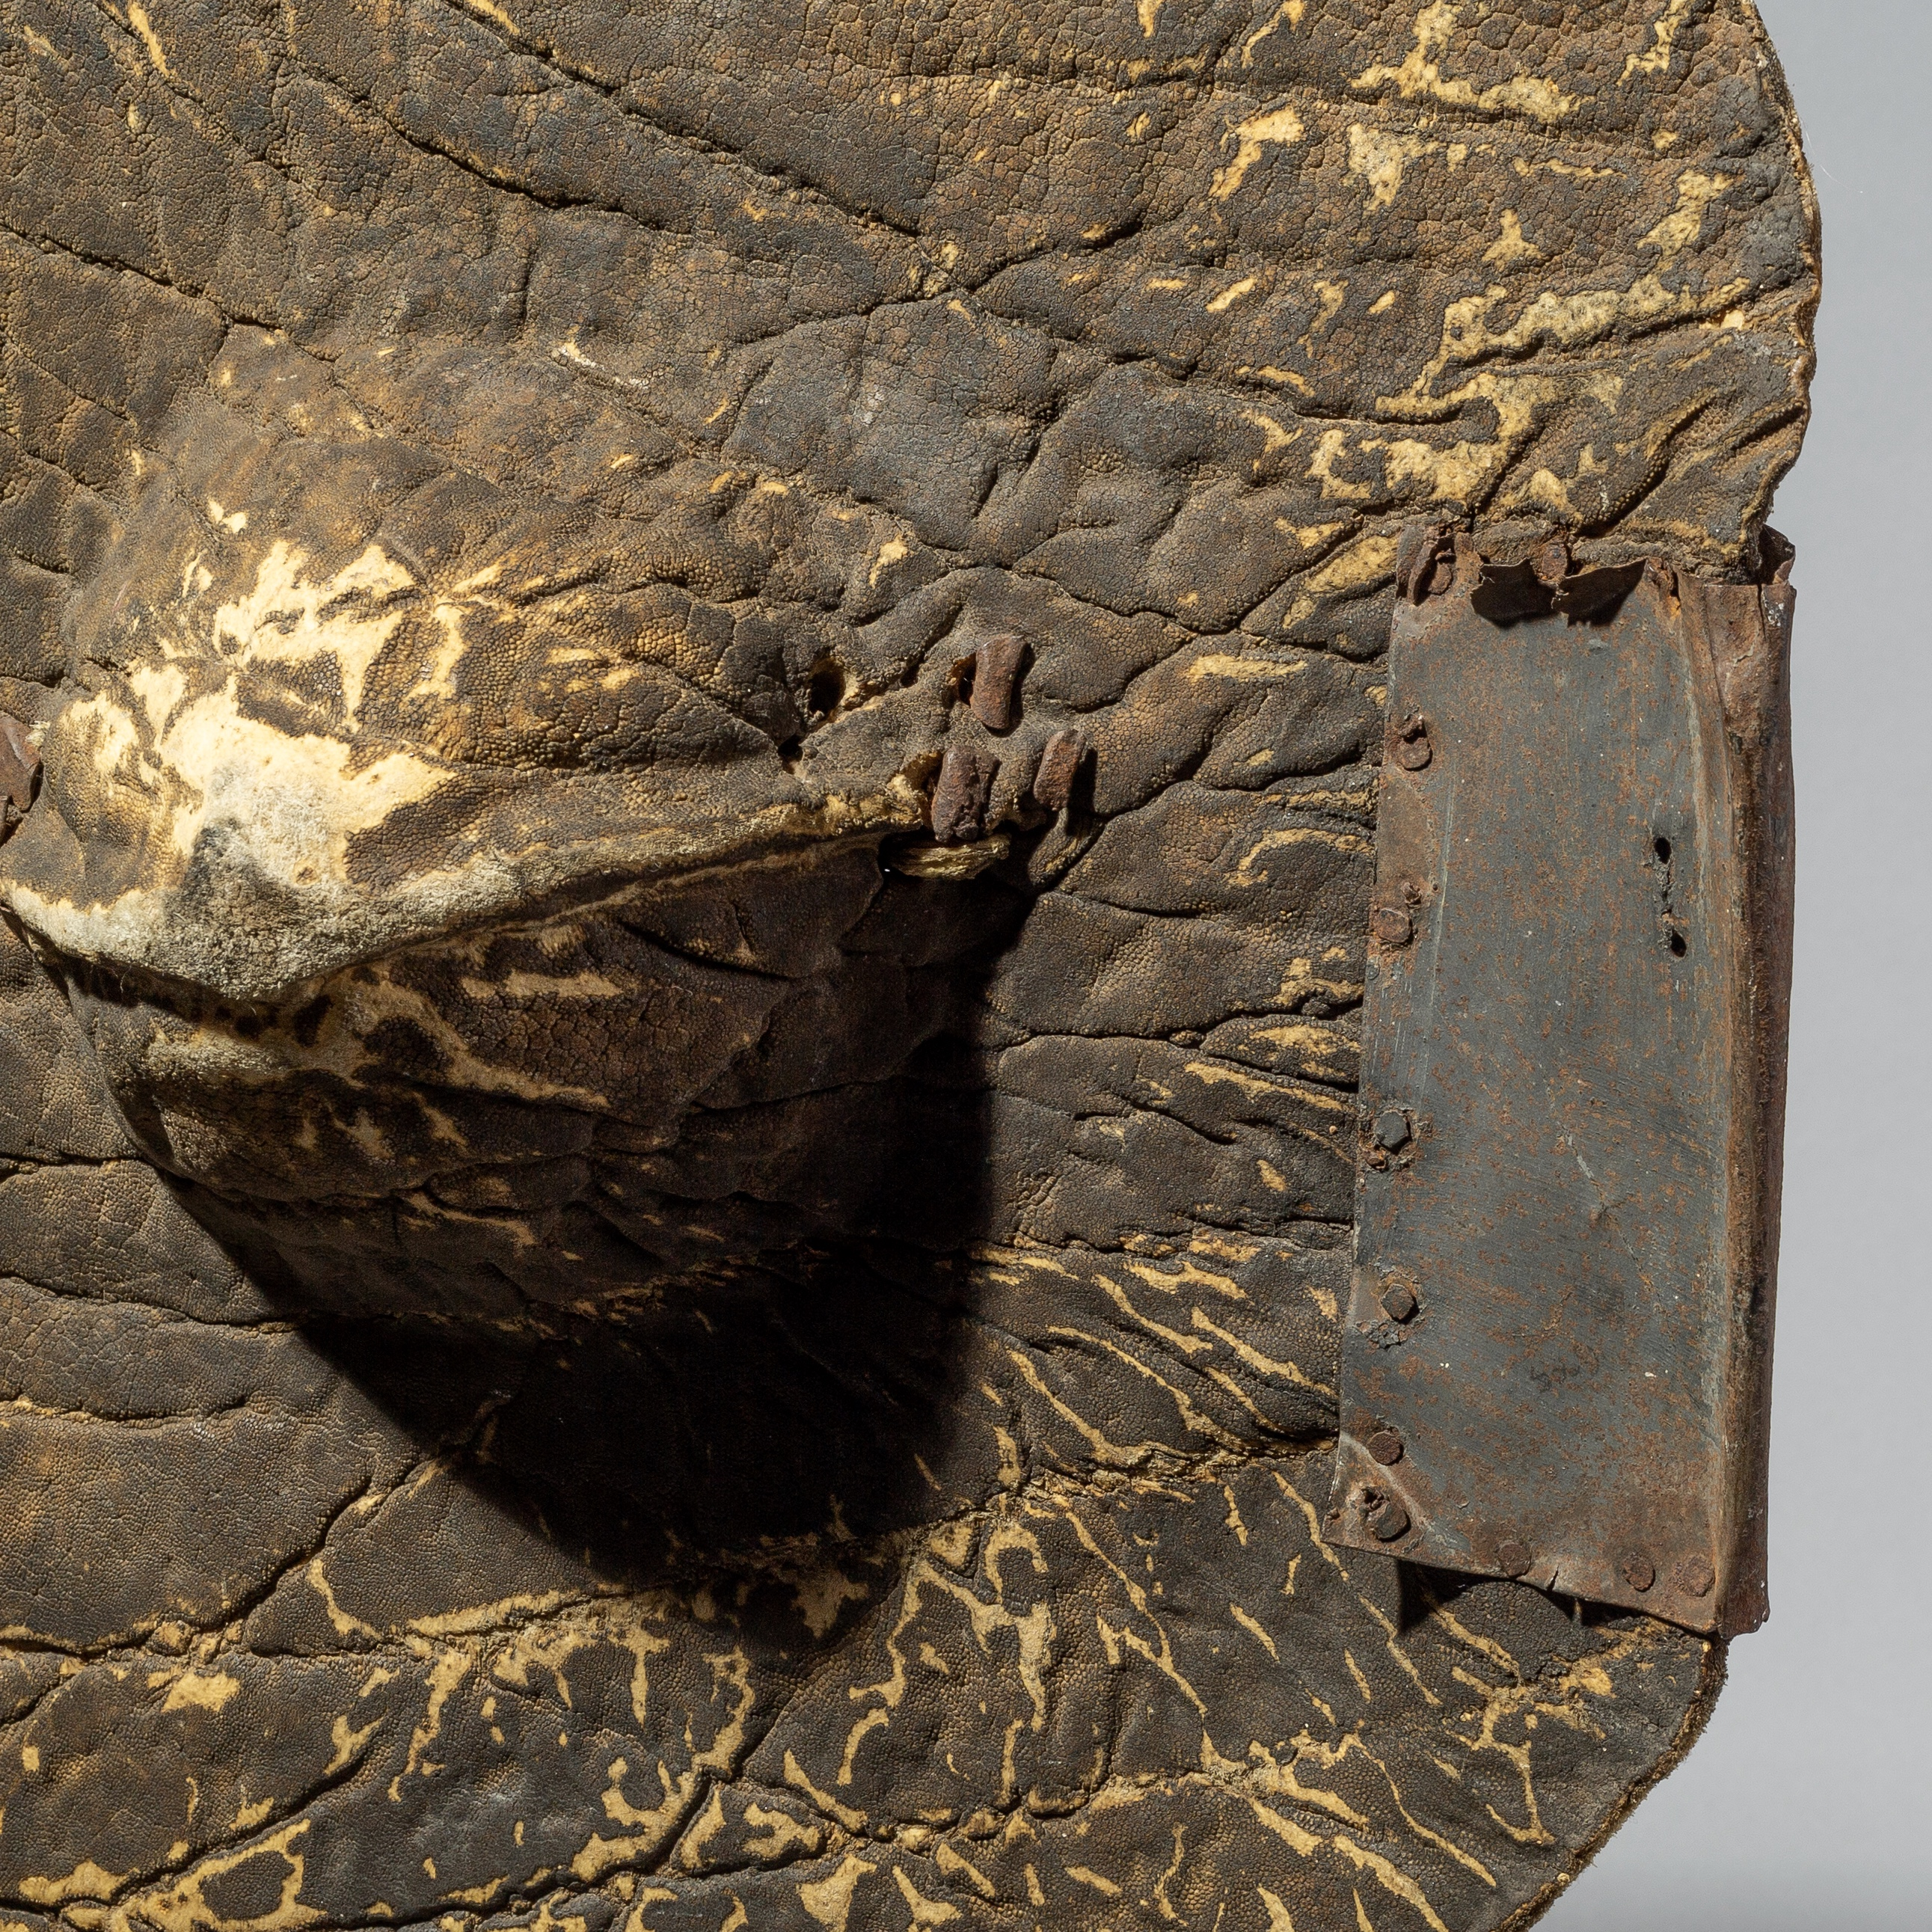 AN AMAZINGLY TEXTURAL BEDJA LEATHER SHIELD FROM SUDAN ( No 403 )